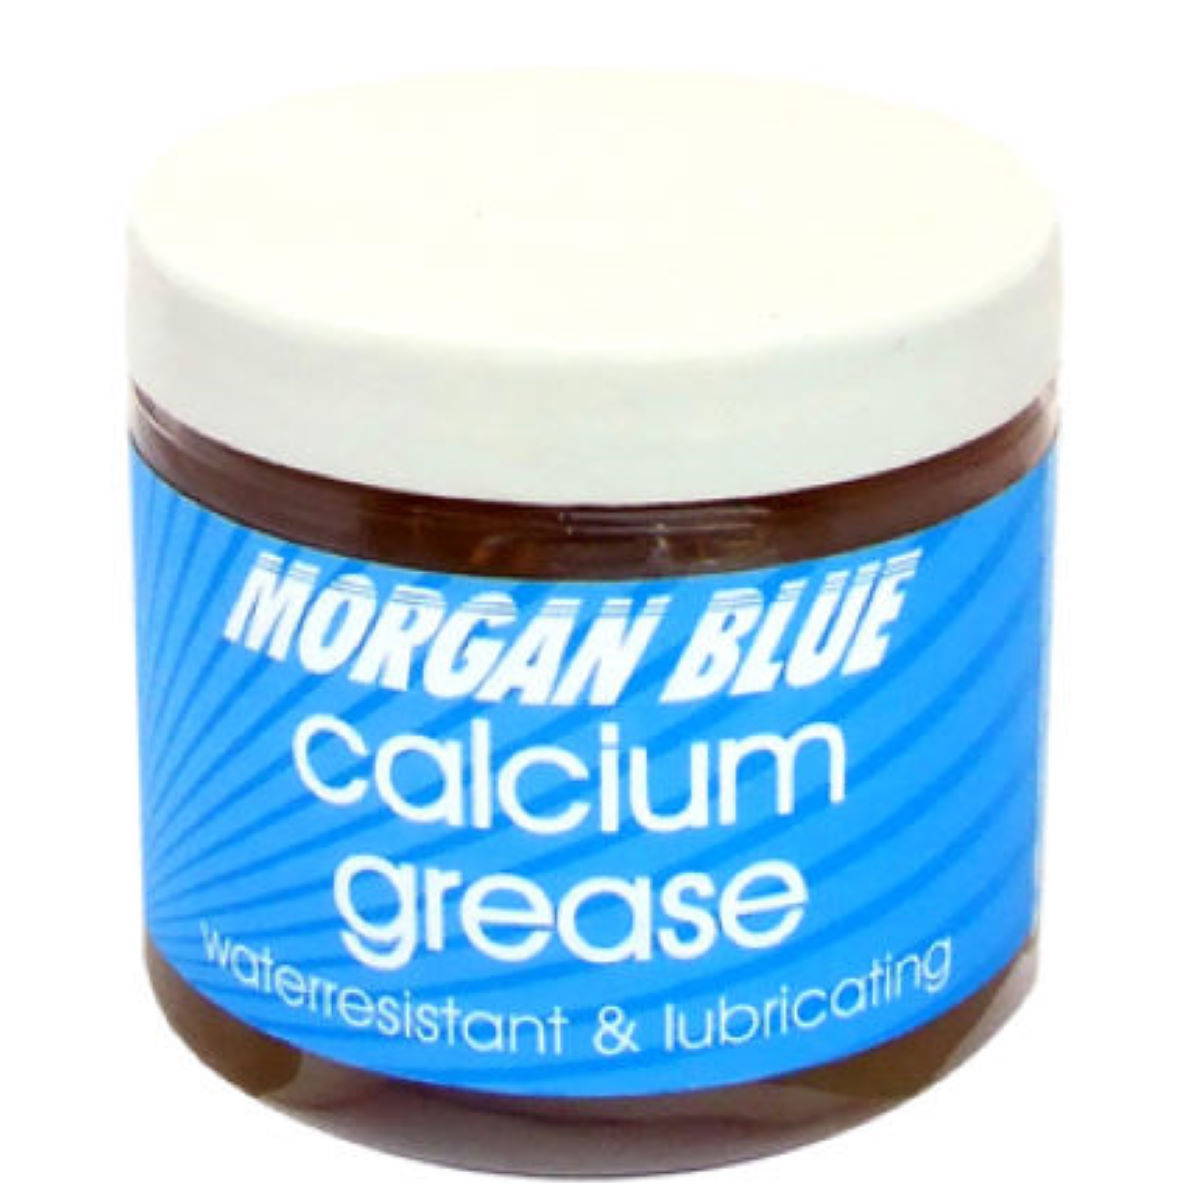 Grasa de calcio Morgan Blue Calcium Grease (200 ml) - Lubricantes